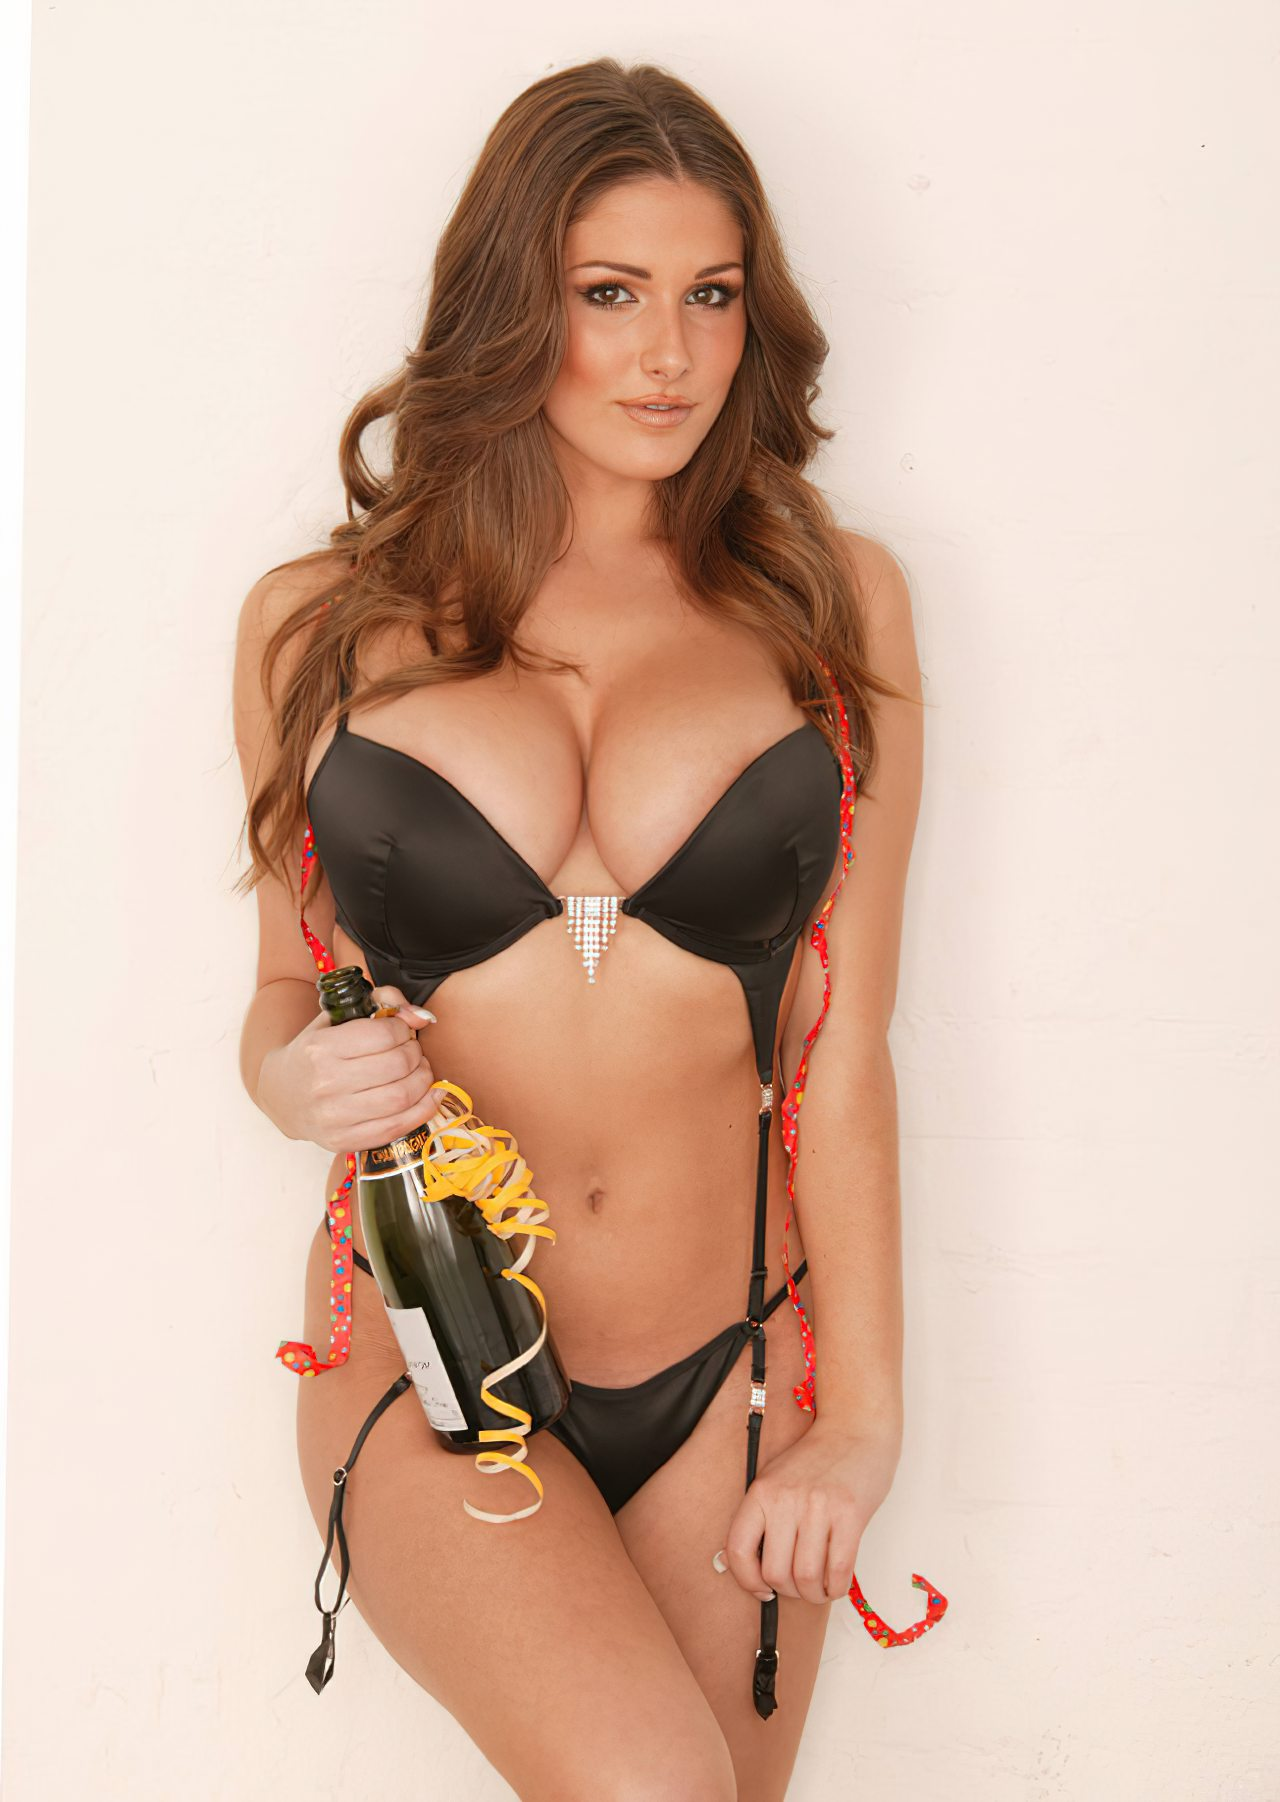 Lucy Katherine Pinder (1)